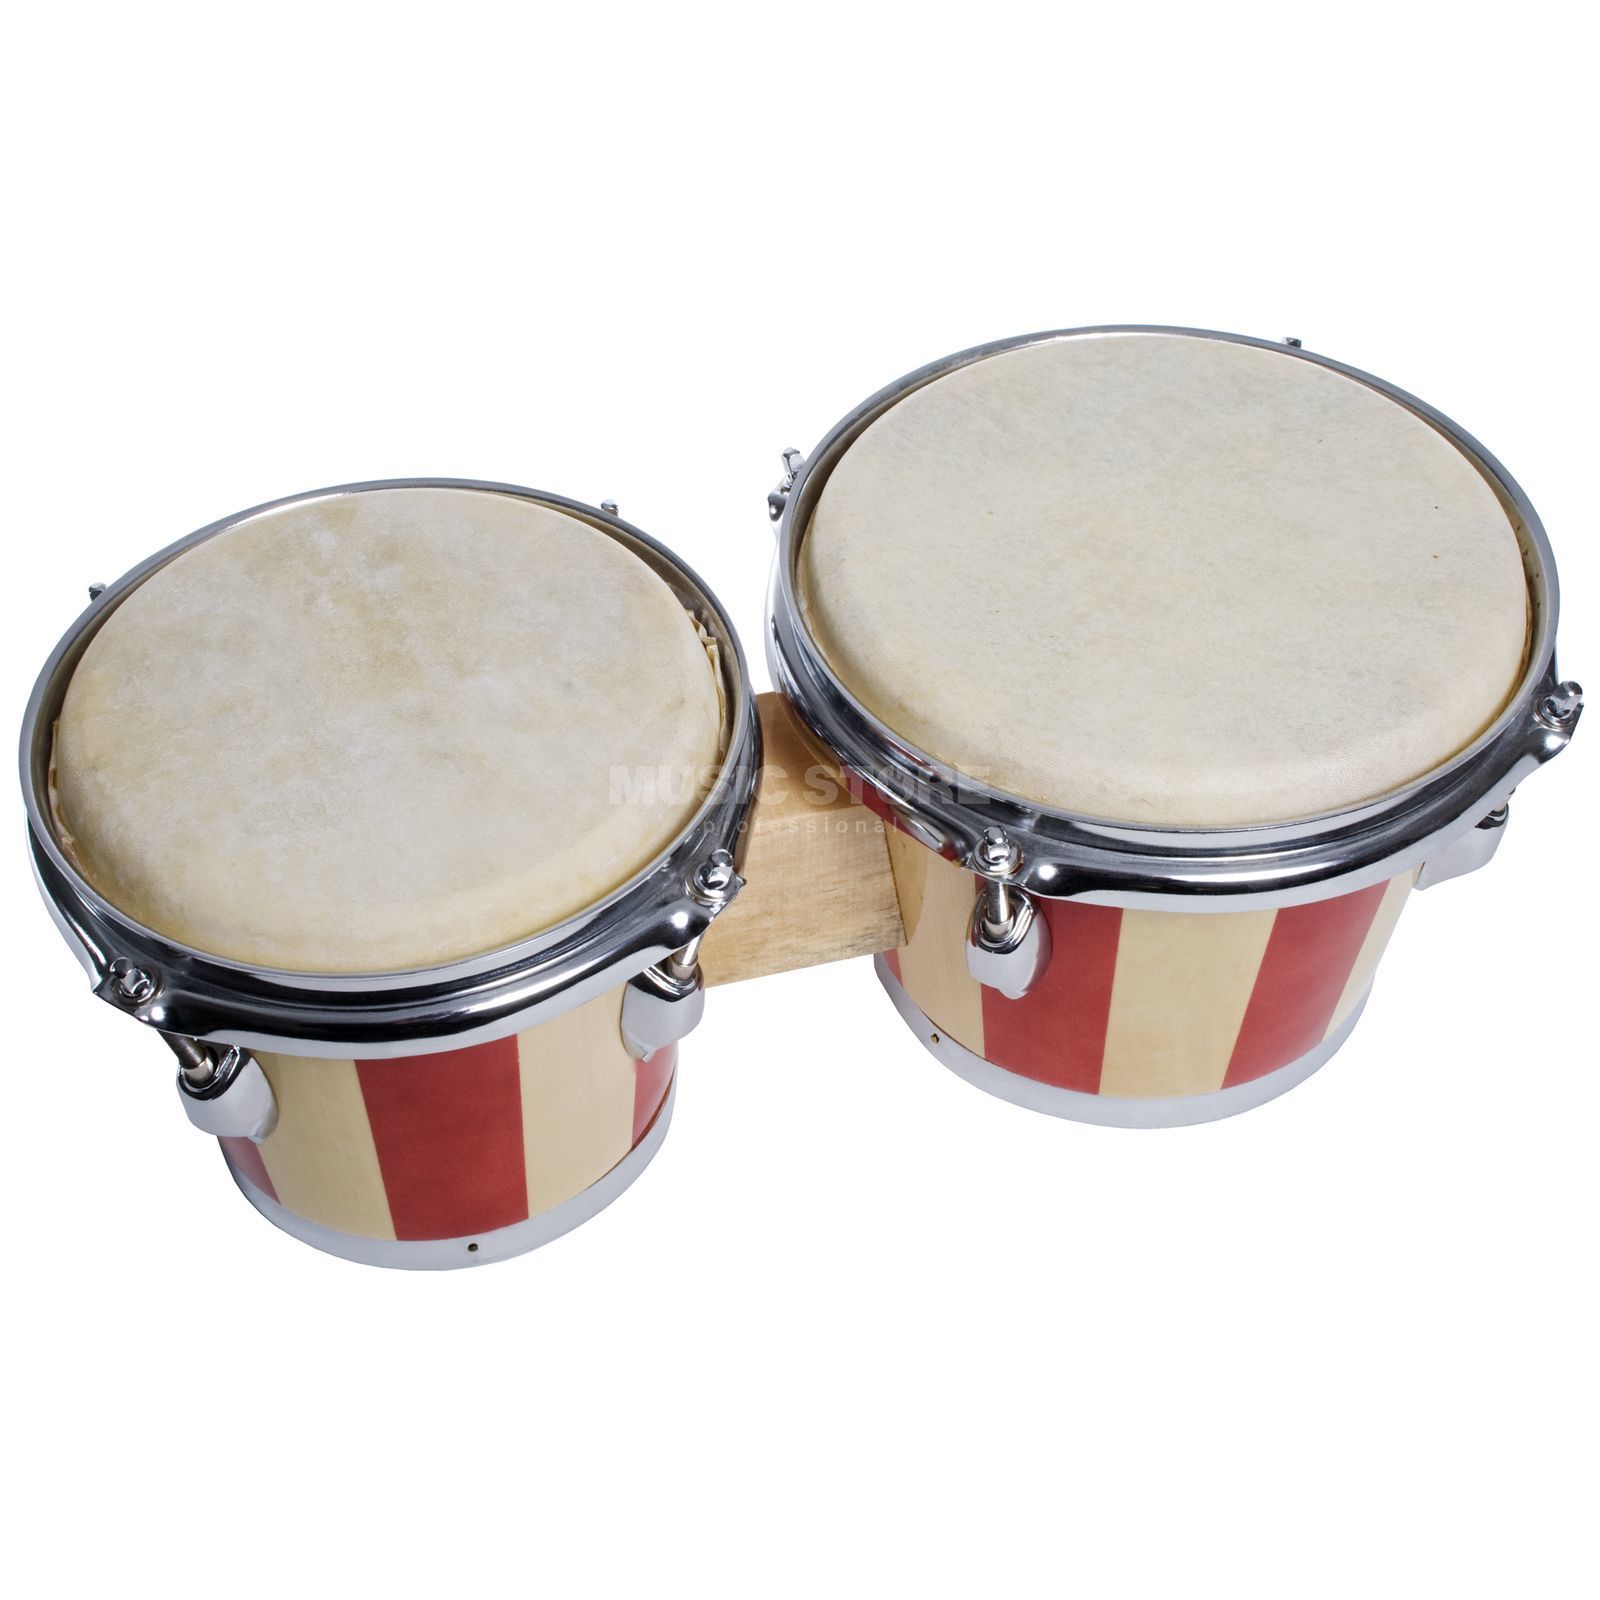 "Fame DB-105 Bongos 7"" + 8"", Natural + Red Stripes Zdjęcie produktu"